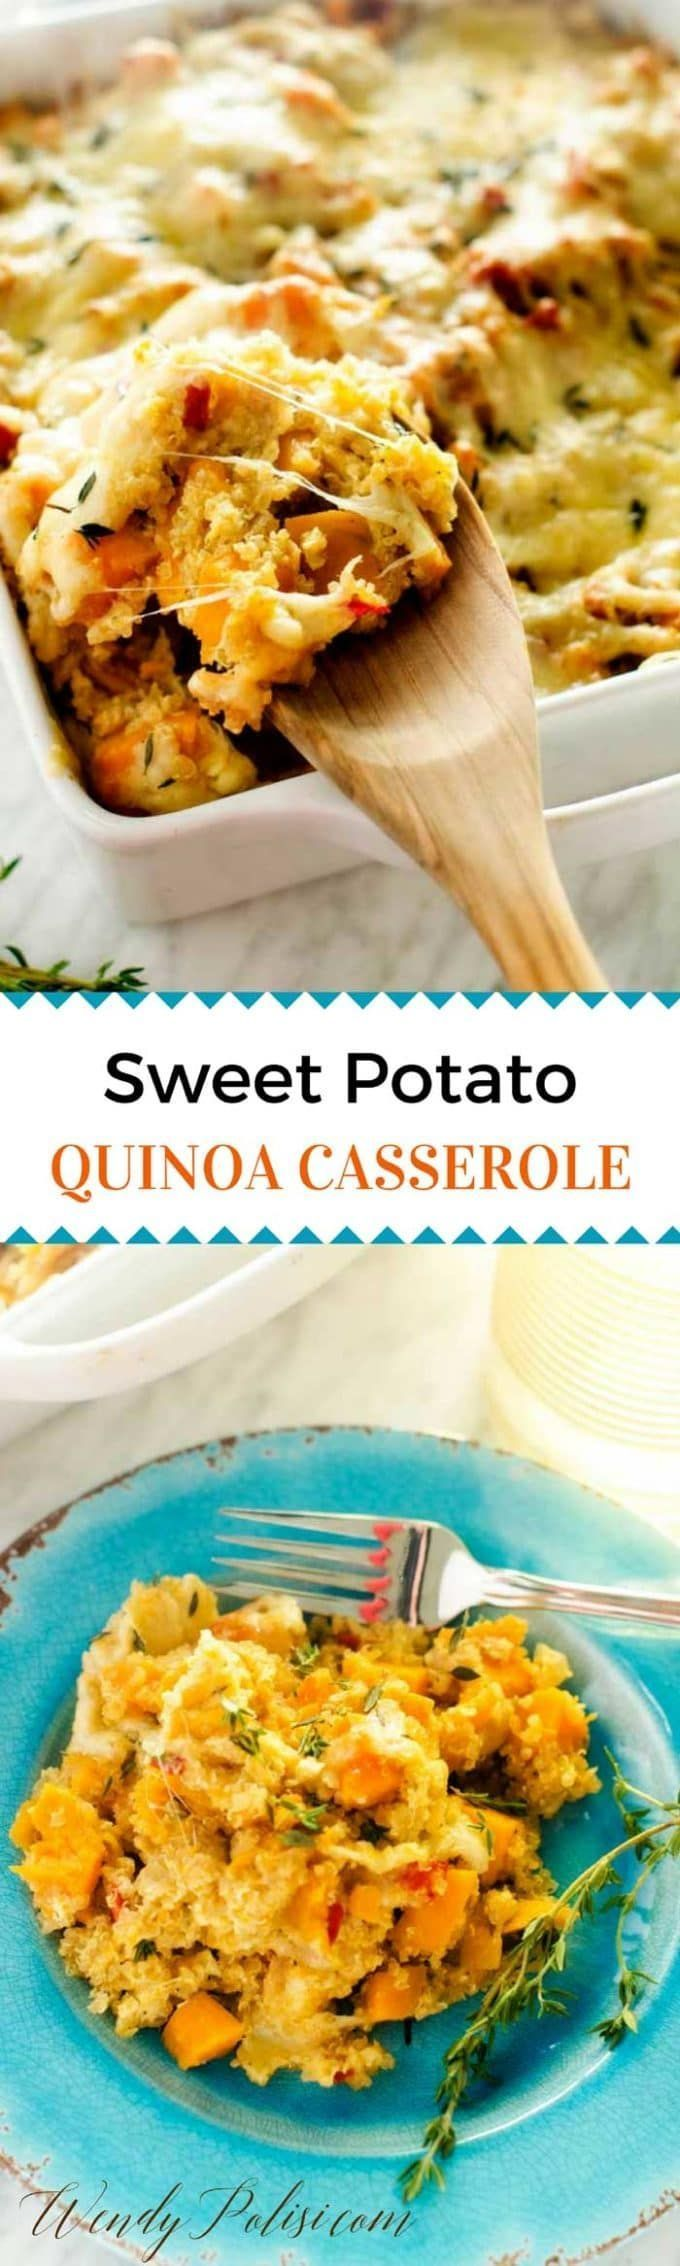 Sweet Potato Quinoa Casserole - This Sweet Potato Quinoa Casserole is the perfect one dish meal!  Gluten Free, Vegetarian, Vegan Option #BrightBites via @wendypolisi